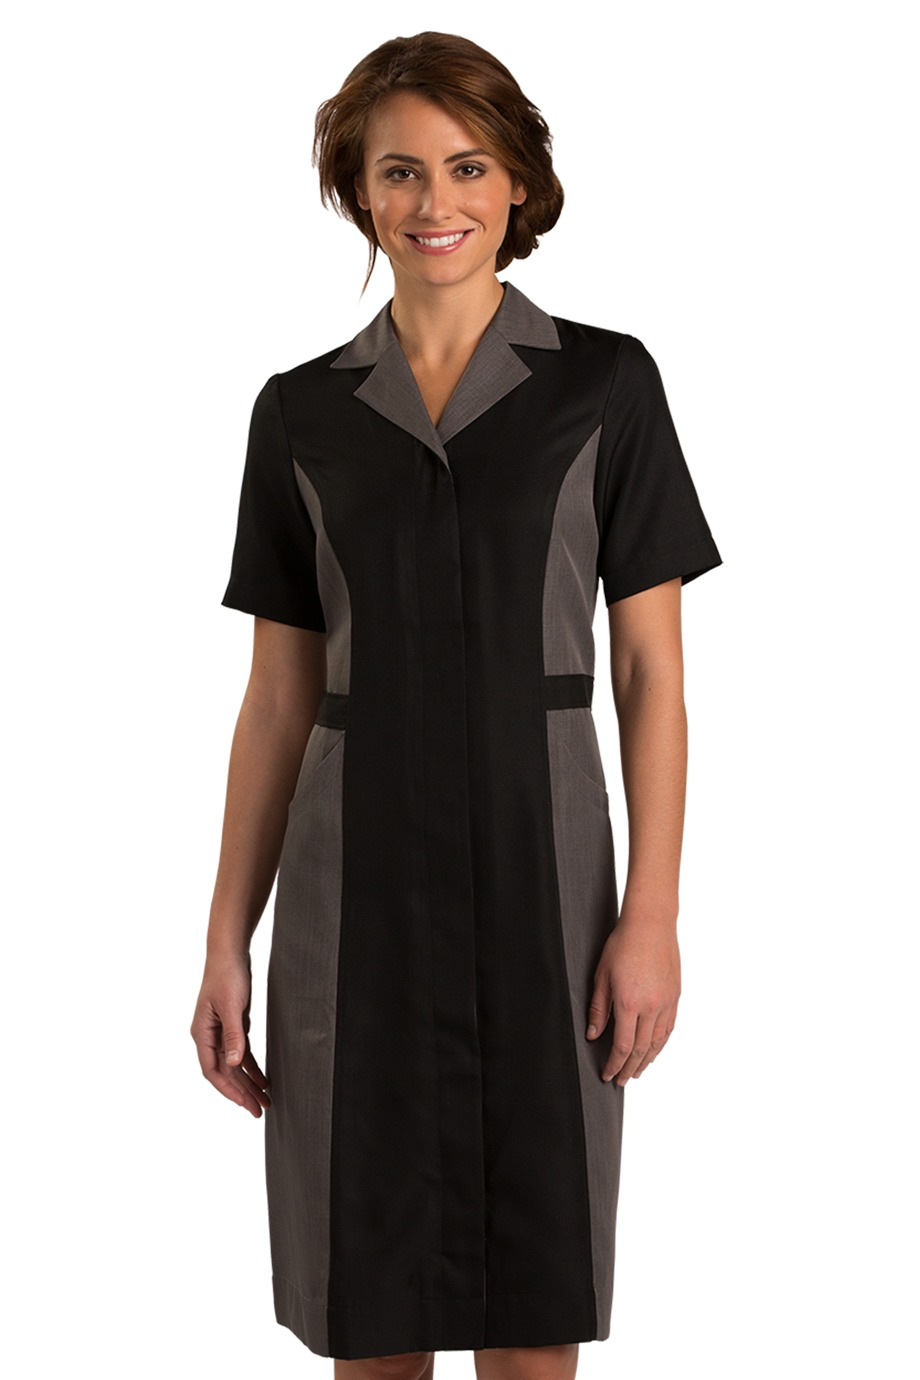 Edwards Garment 9891 - Premier Housekeeping Dress